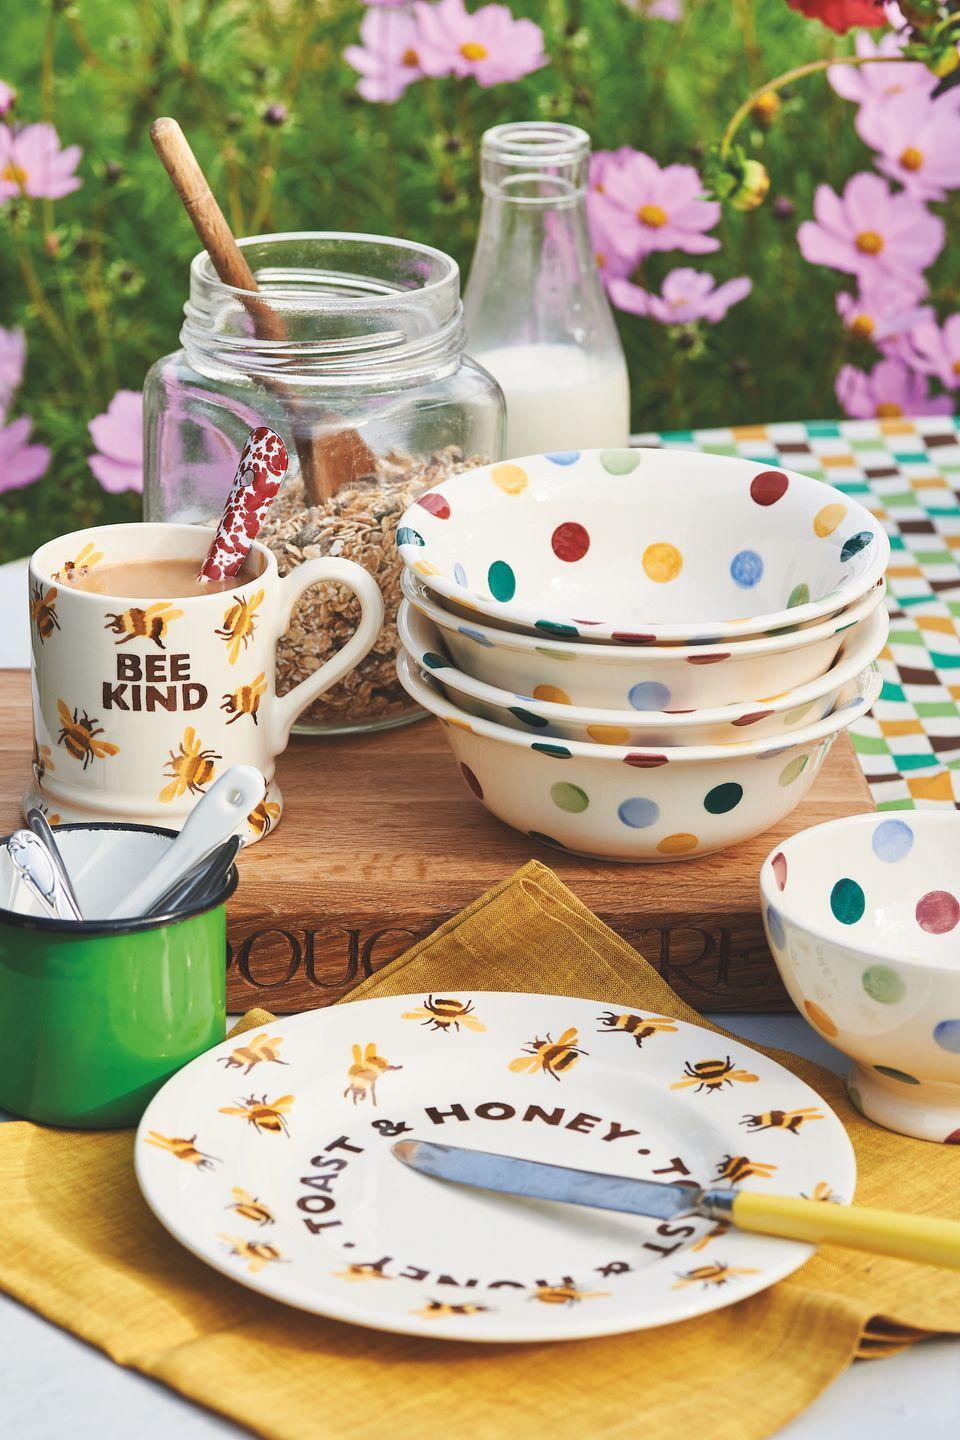 """<p>Whether your go-to breakfast is toast or cereal, Emma Bridgewater's new collection has everything you could possibly need. You'll find bowls, plates, butter knives, mugs and much more. </p><p><a class=""""link rapid-noclick-resp"""" href=""""https://go.redirectingat.com?id=127X1599956&url=https%3A%2F%2Fwww.emmabridgewater.co.uk%2Fcollections%2Fnew&sref=https%3A%2F%2Fwww.countryliving.com%2Fuk%2Fhomes-interiors%2Finteriors%2Fg35249240%2Femma-bridgewater-spring%2F"""" rel=""""nofollow noopener"""" target=""""_blank"""" data-ylk=""""slk:BUY NOW"""">BUY NOW</a></p>"""